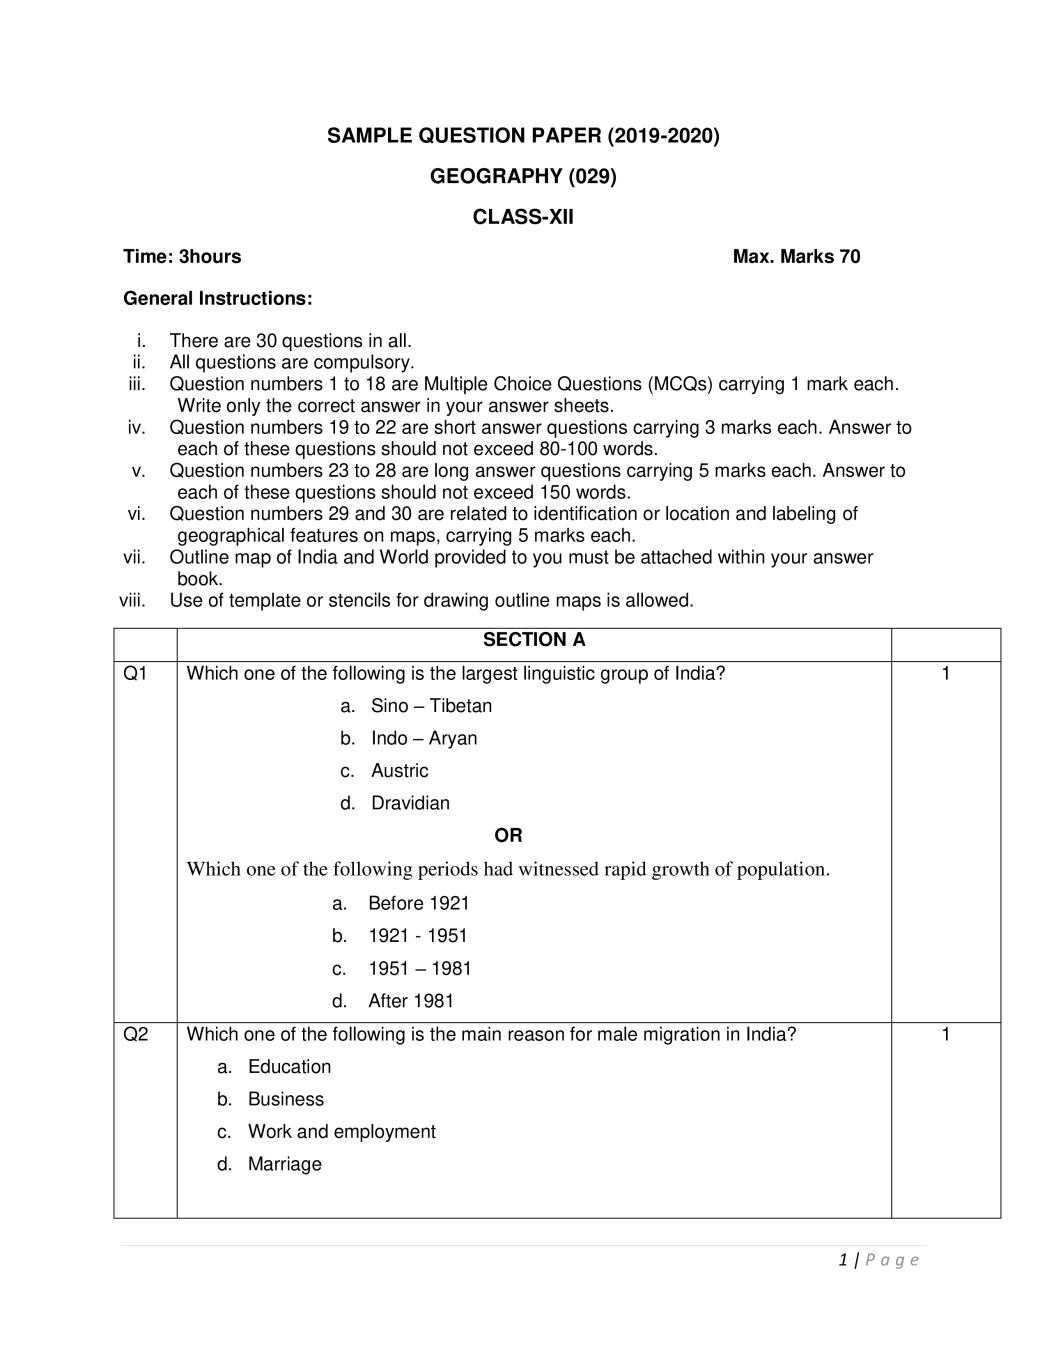 CBSE Sample Papers 2020 for Class 12 – Geography